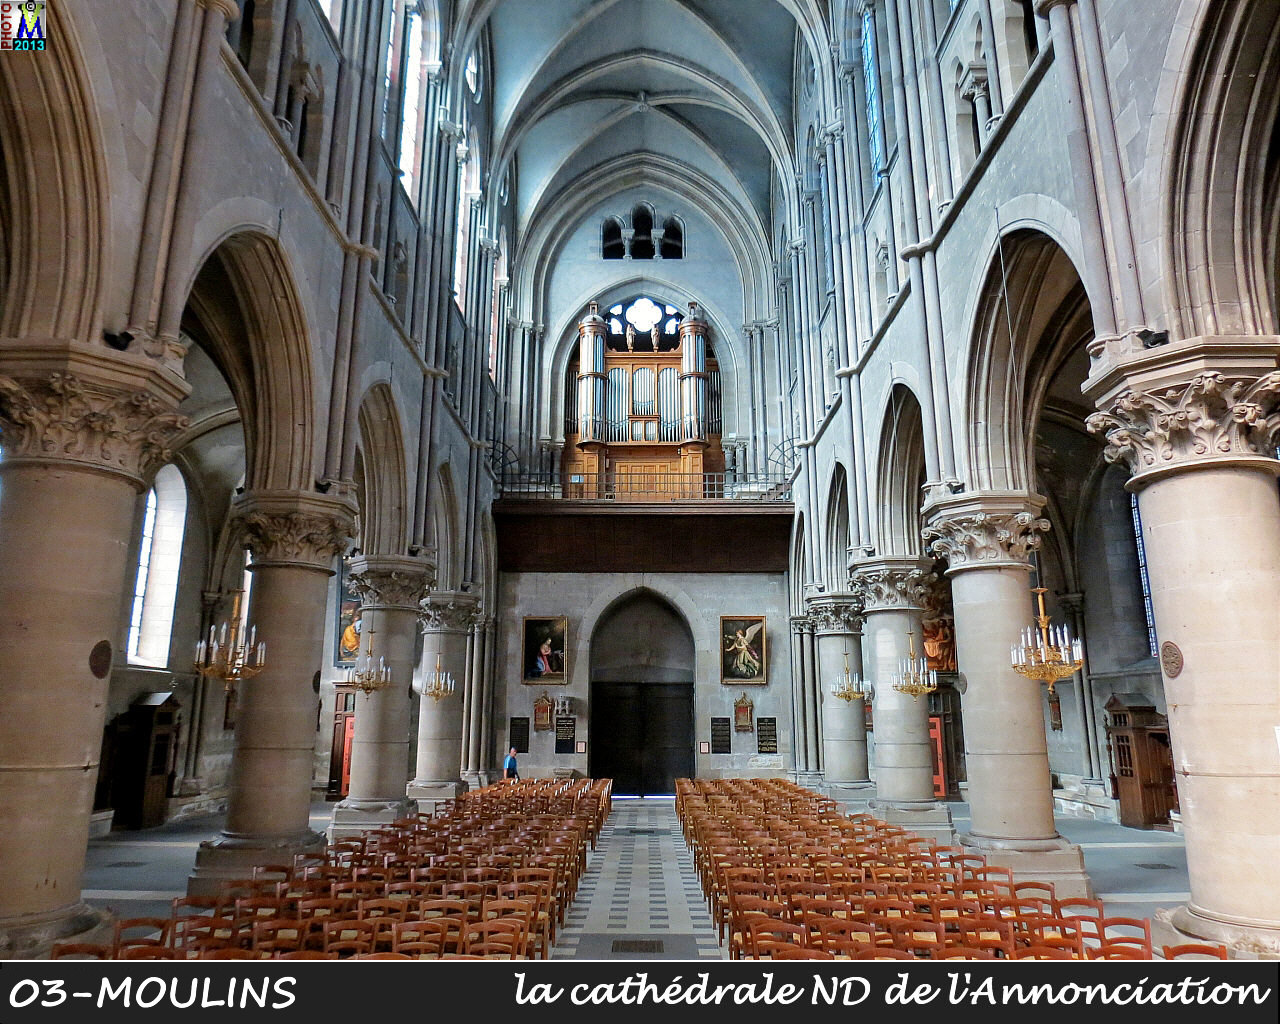 03MOULINS_cathedrale_202.jpg